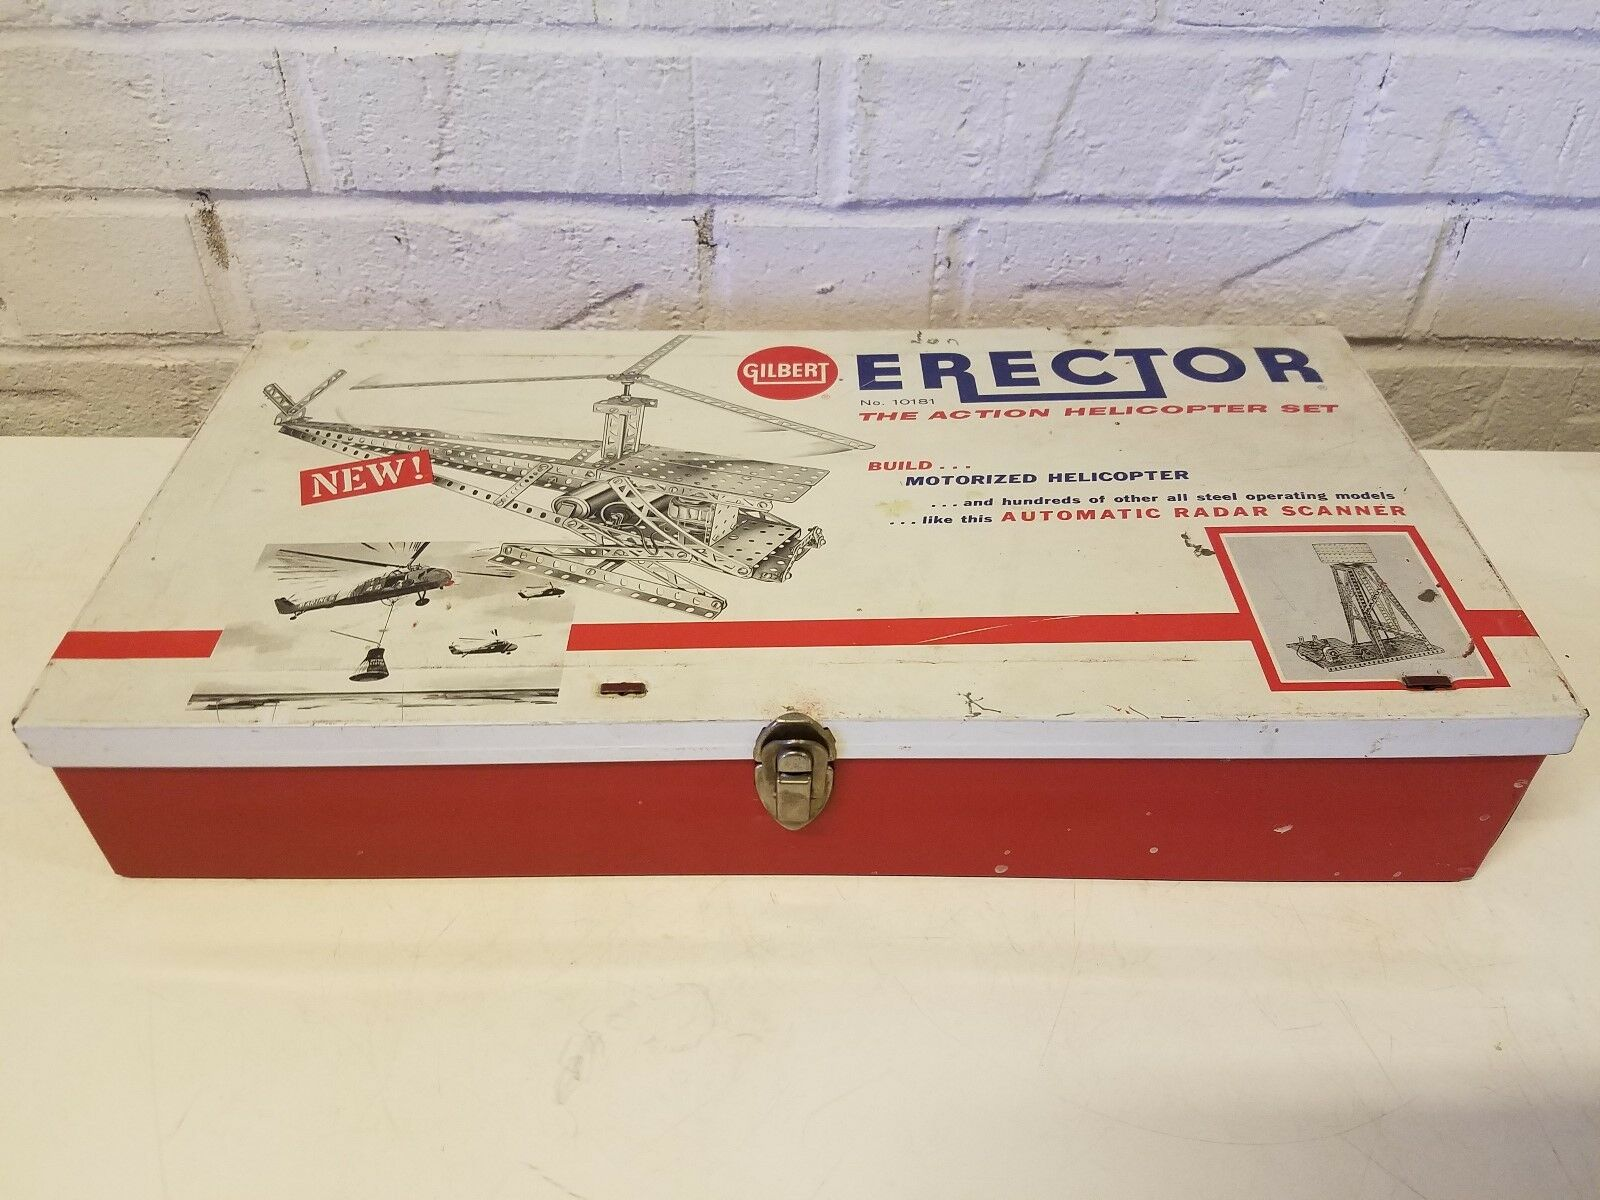 594ms Gilbert 10181 Motorizado Erector Helicoptor Set